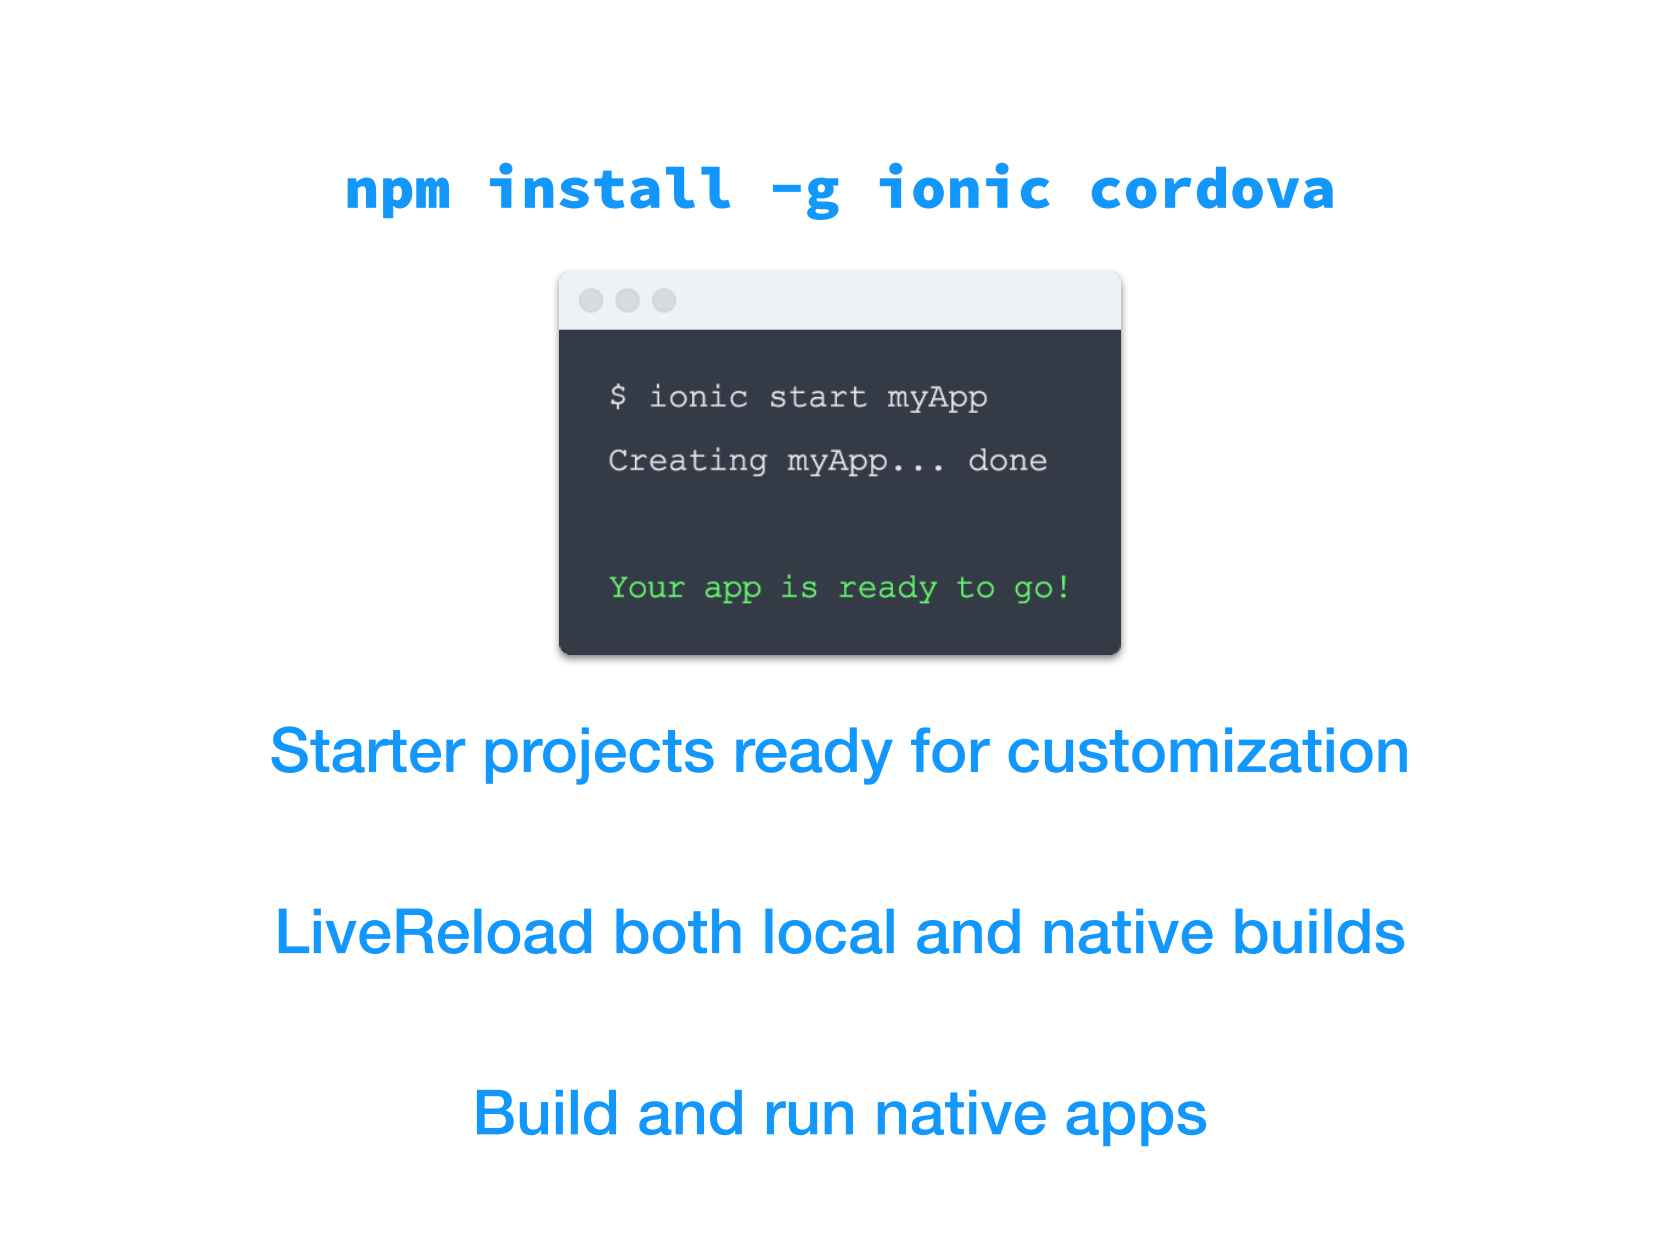 Introduction to Ionic, a Cordova and AngularJS-based Mobile